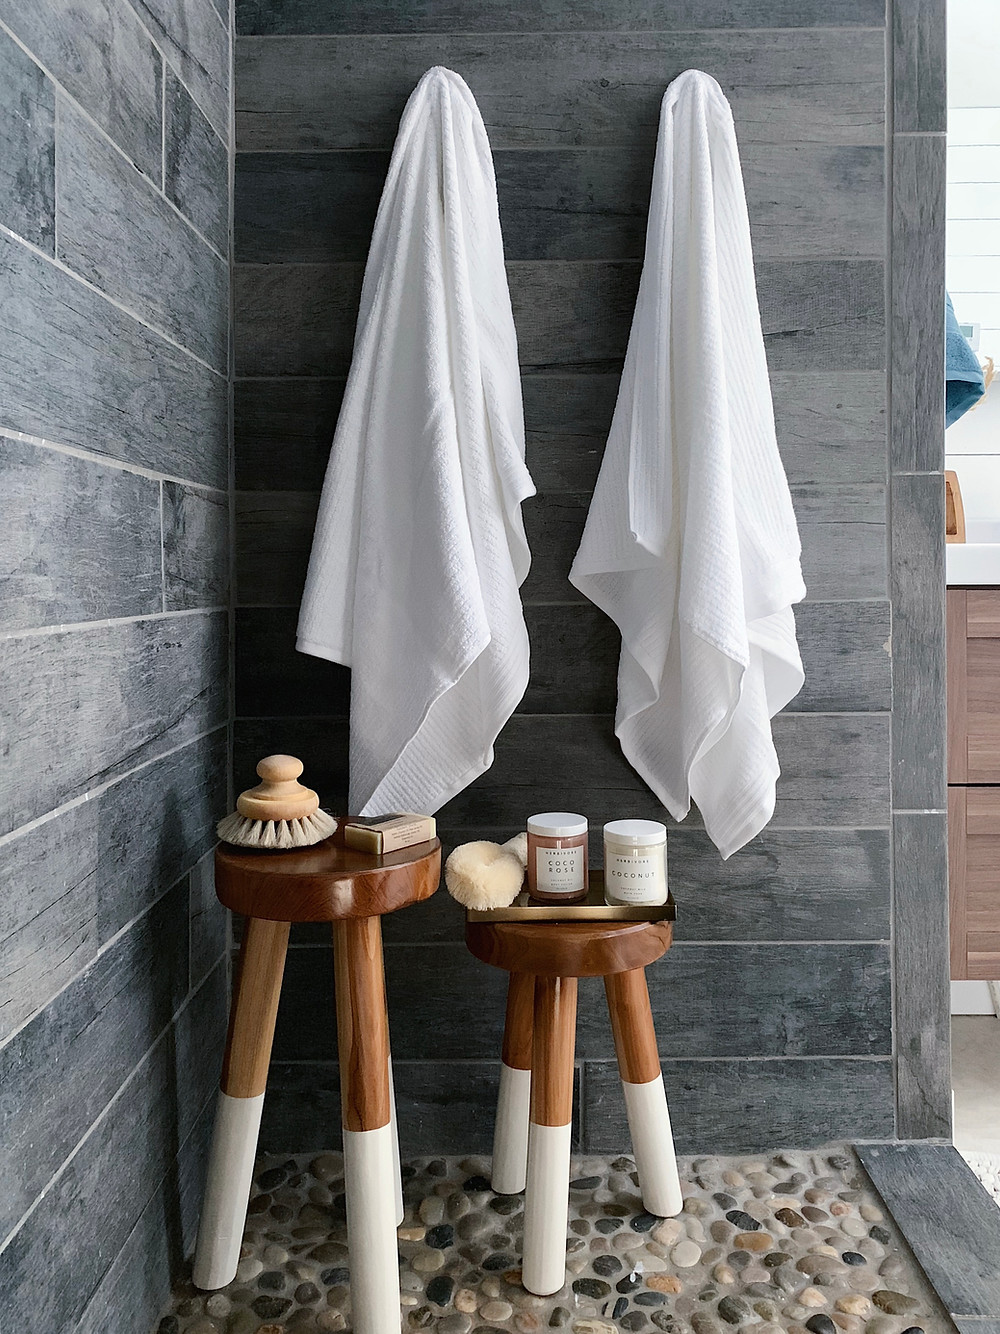 stools in the shower